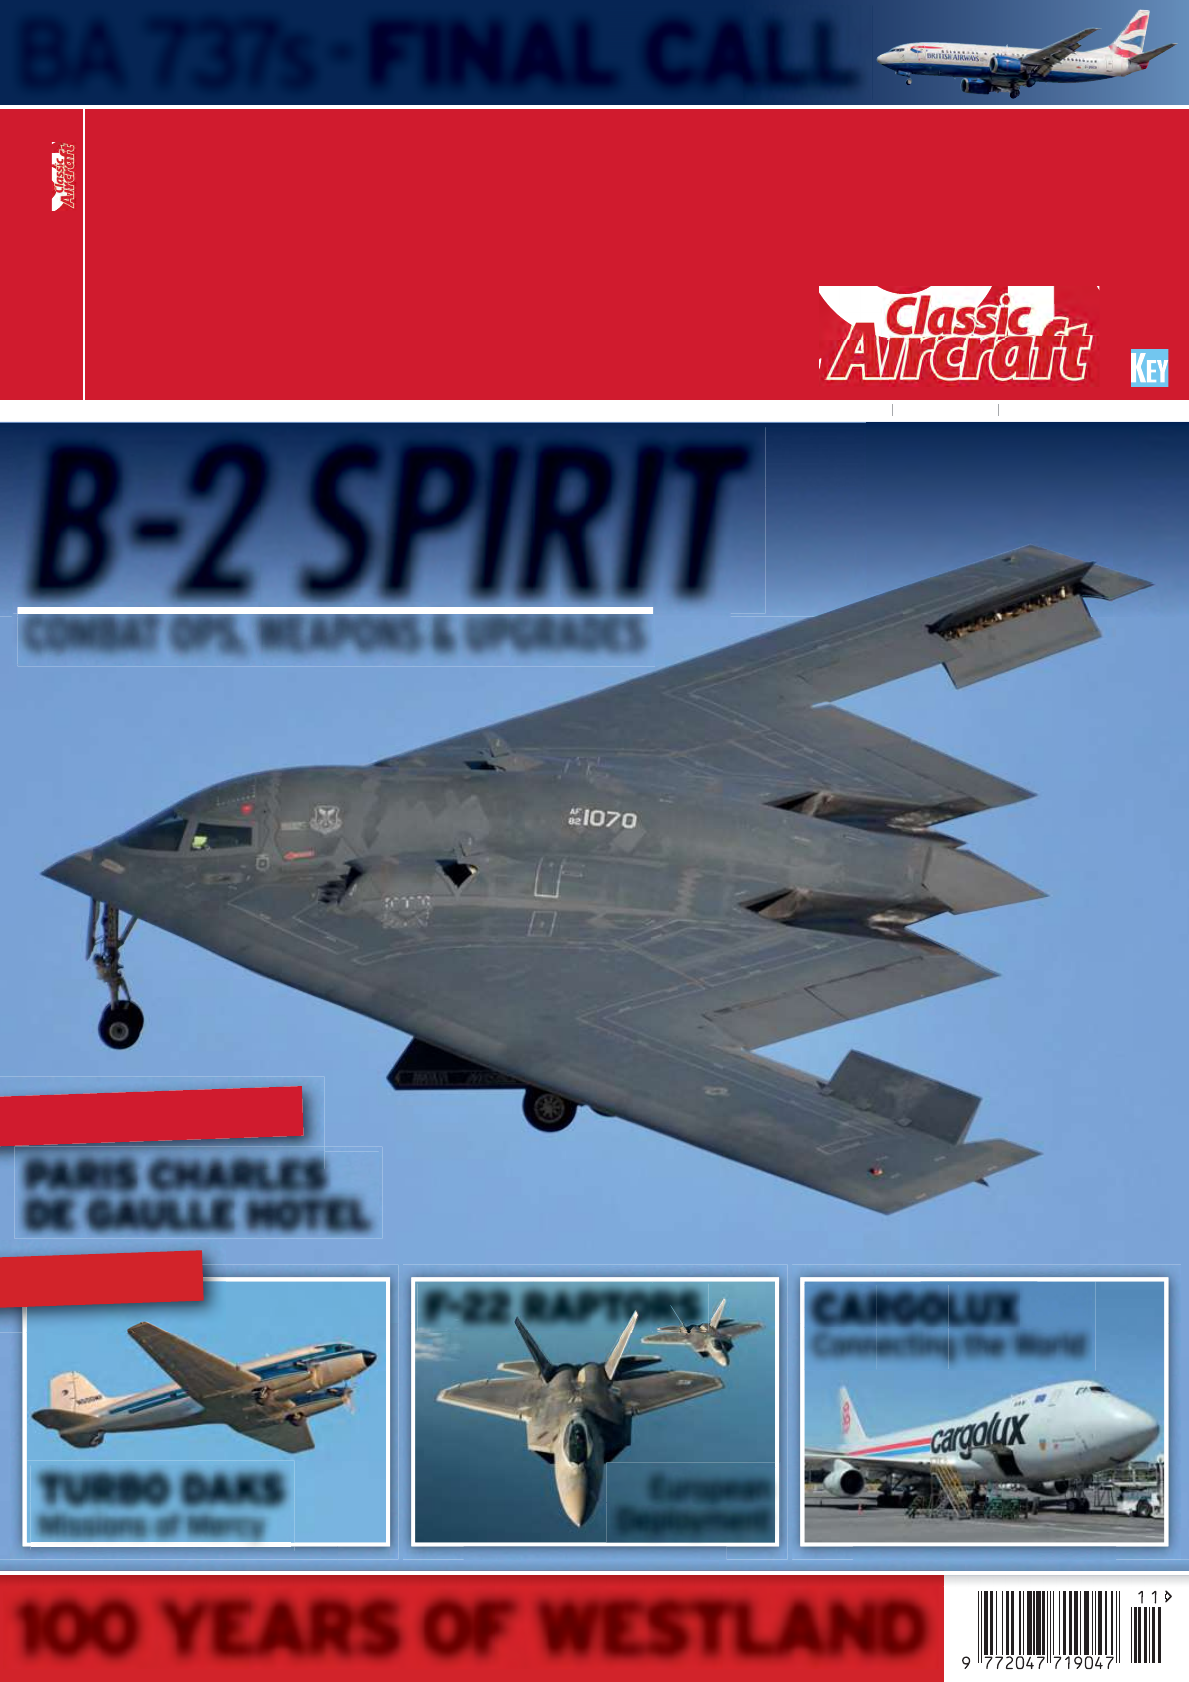 Aviation News - November 2015